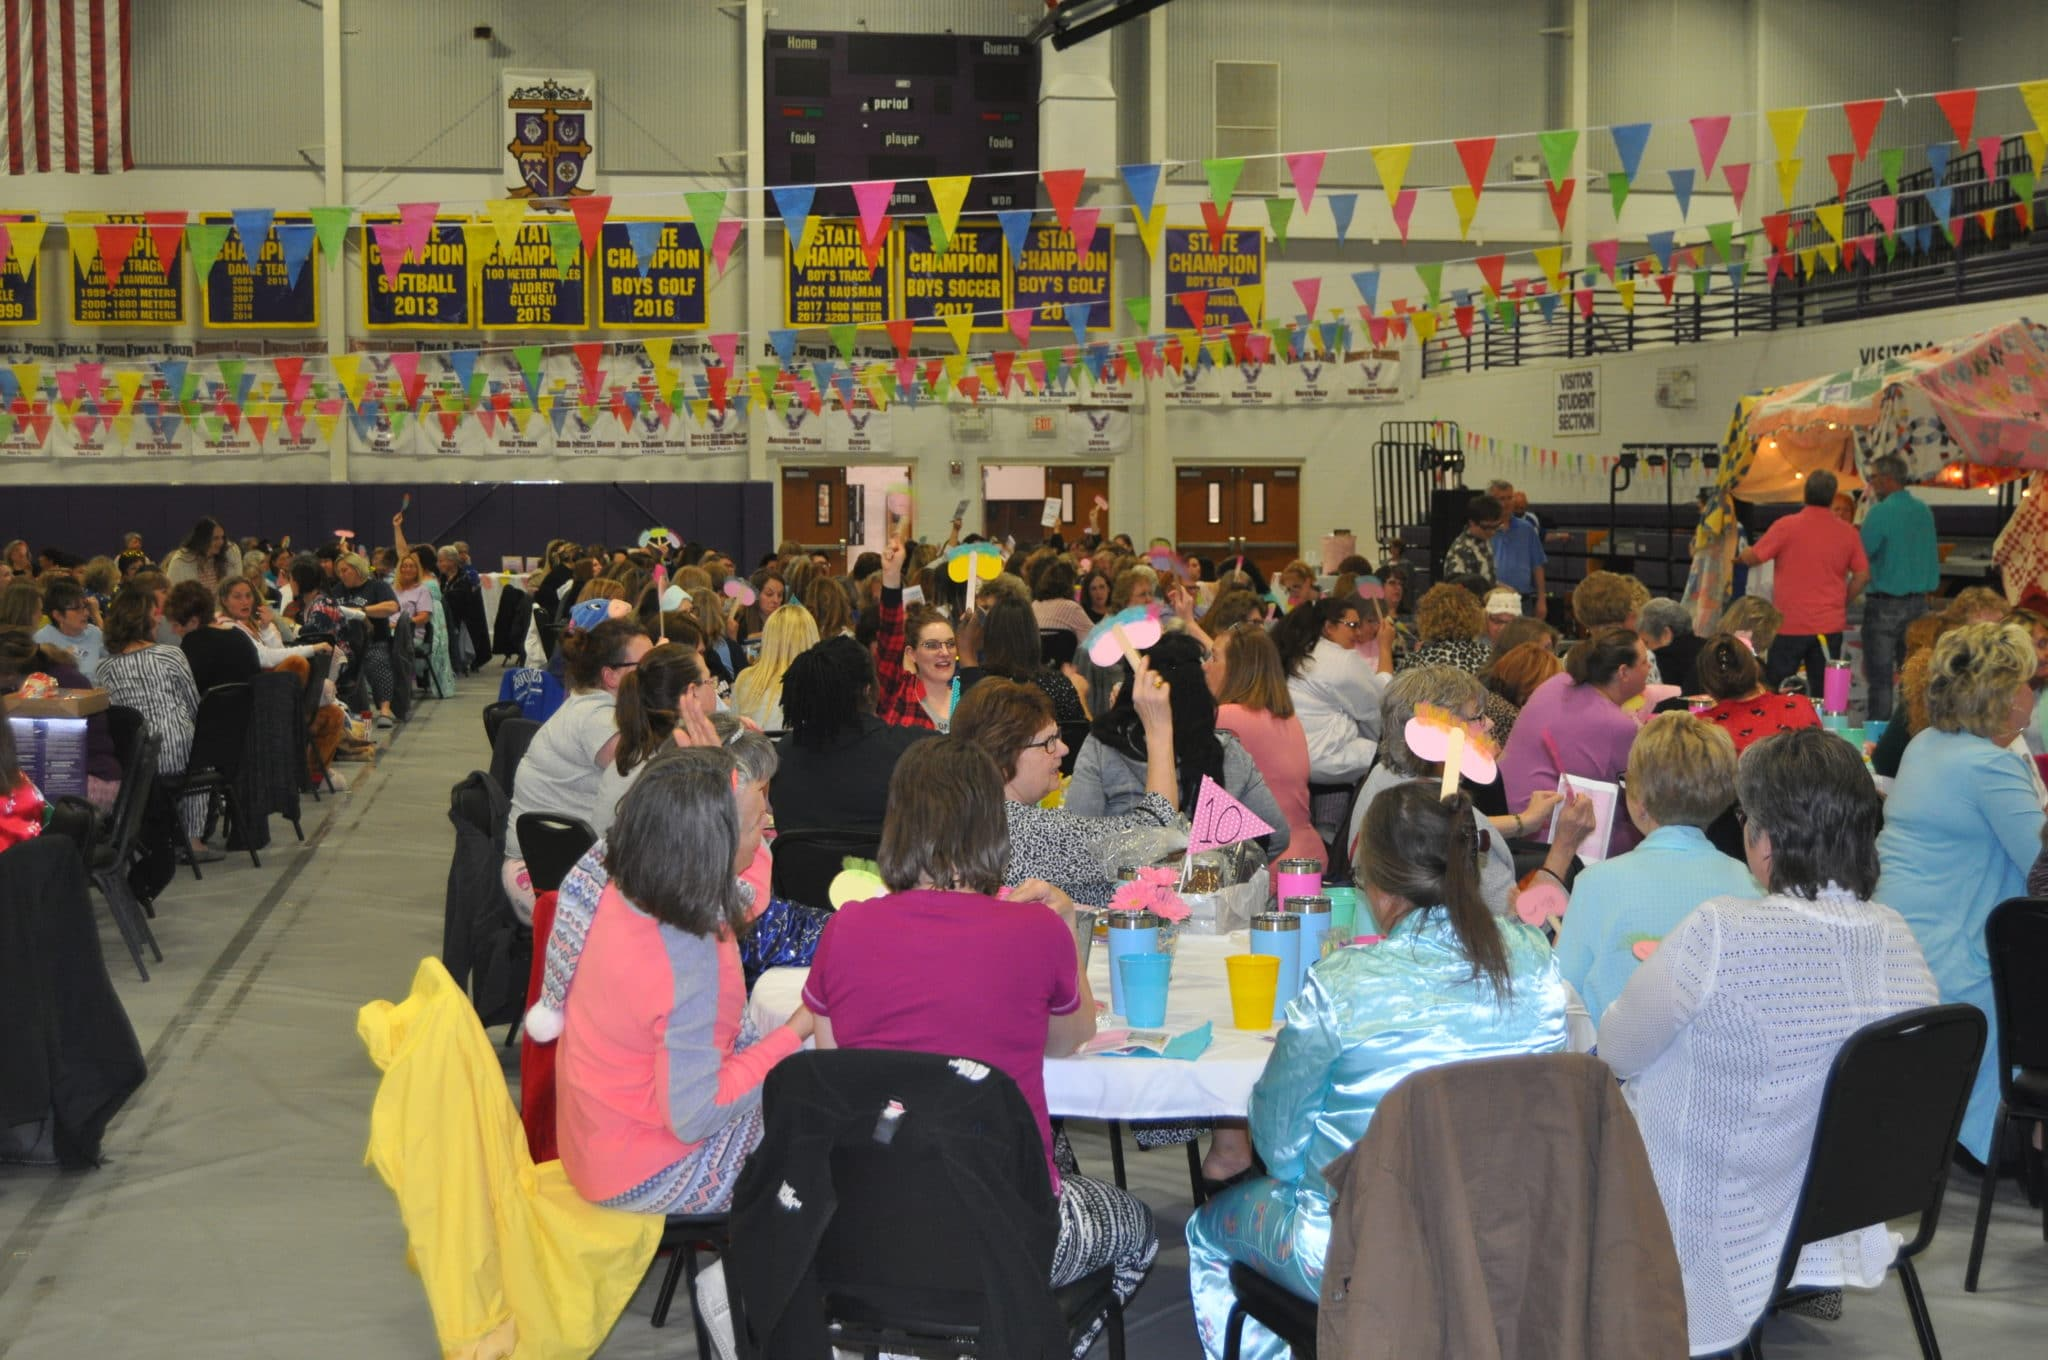 A large group of people sit around tables holding up auction paddles